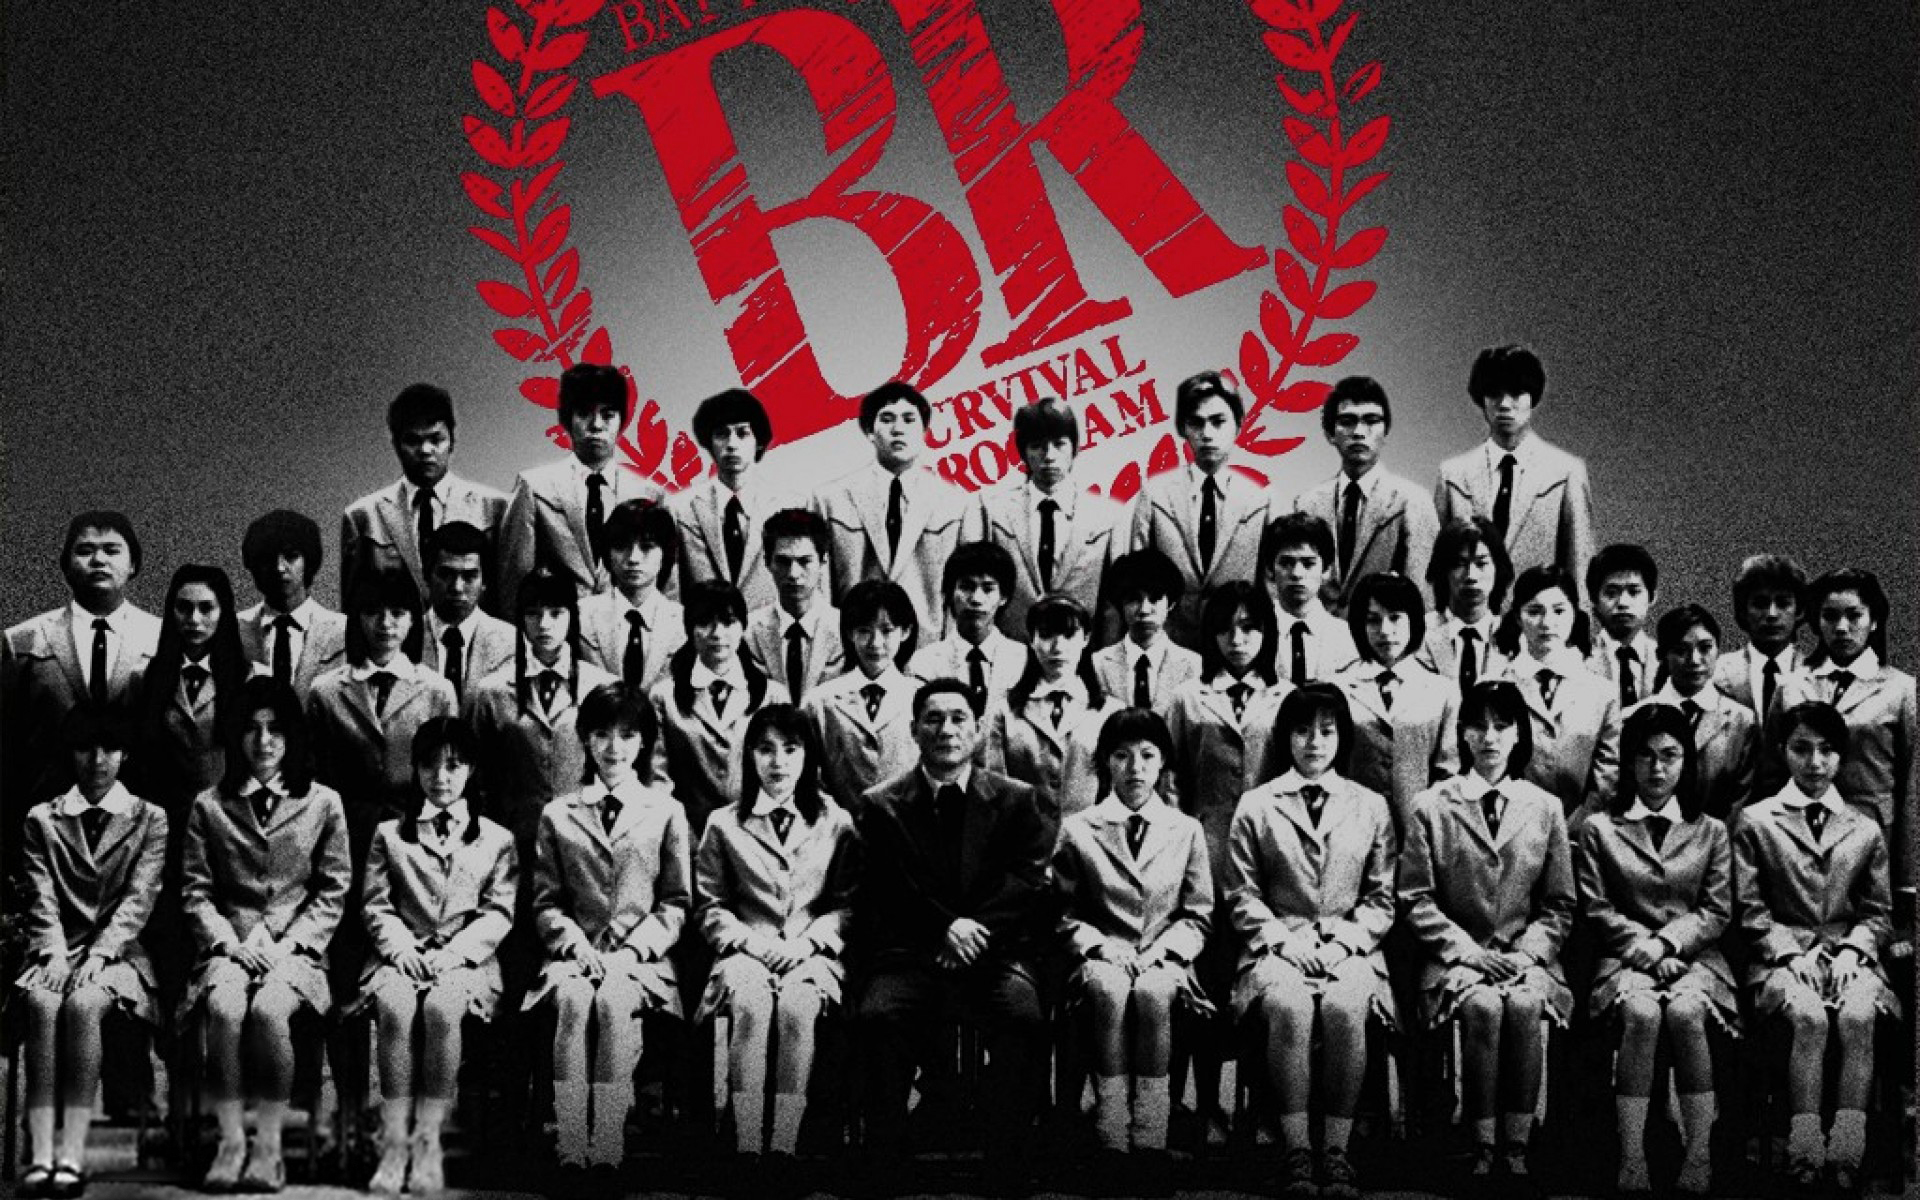 battle royale - class - students - movie - kitano